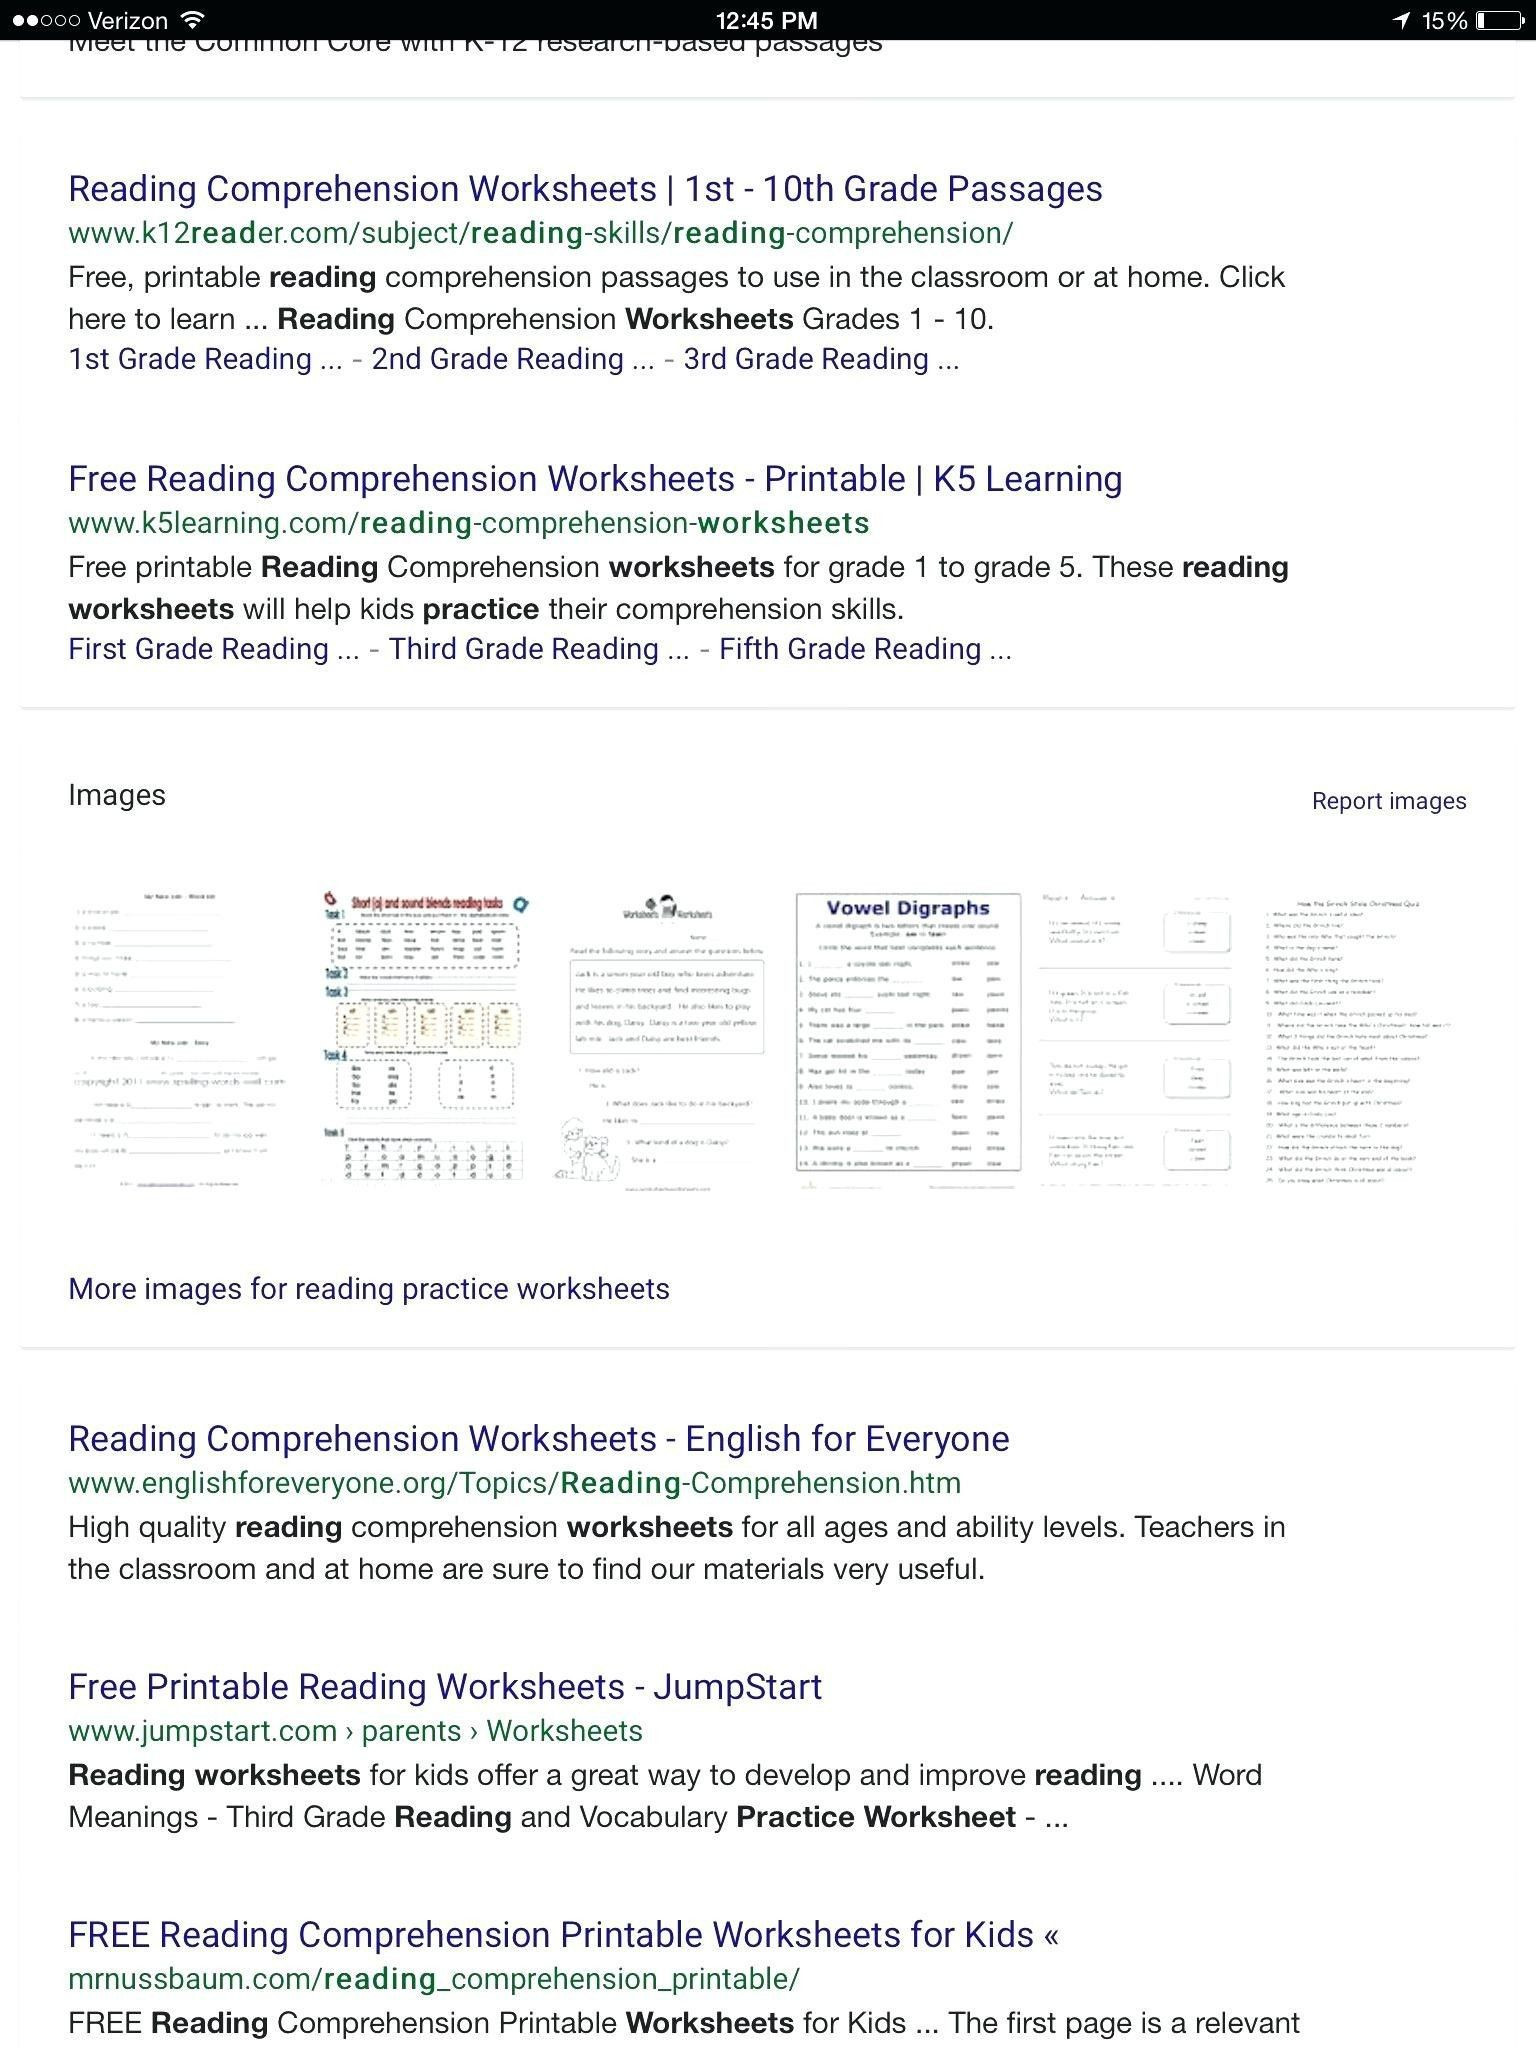 Reading Worksheets Grade 5 Reading Worksheets for 3rd Graders Free Printable